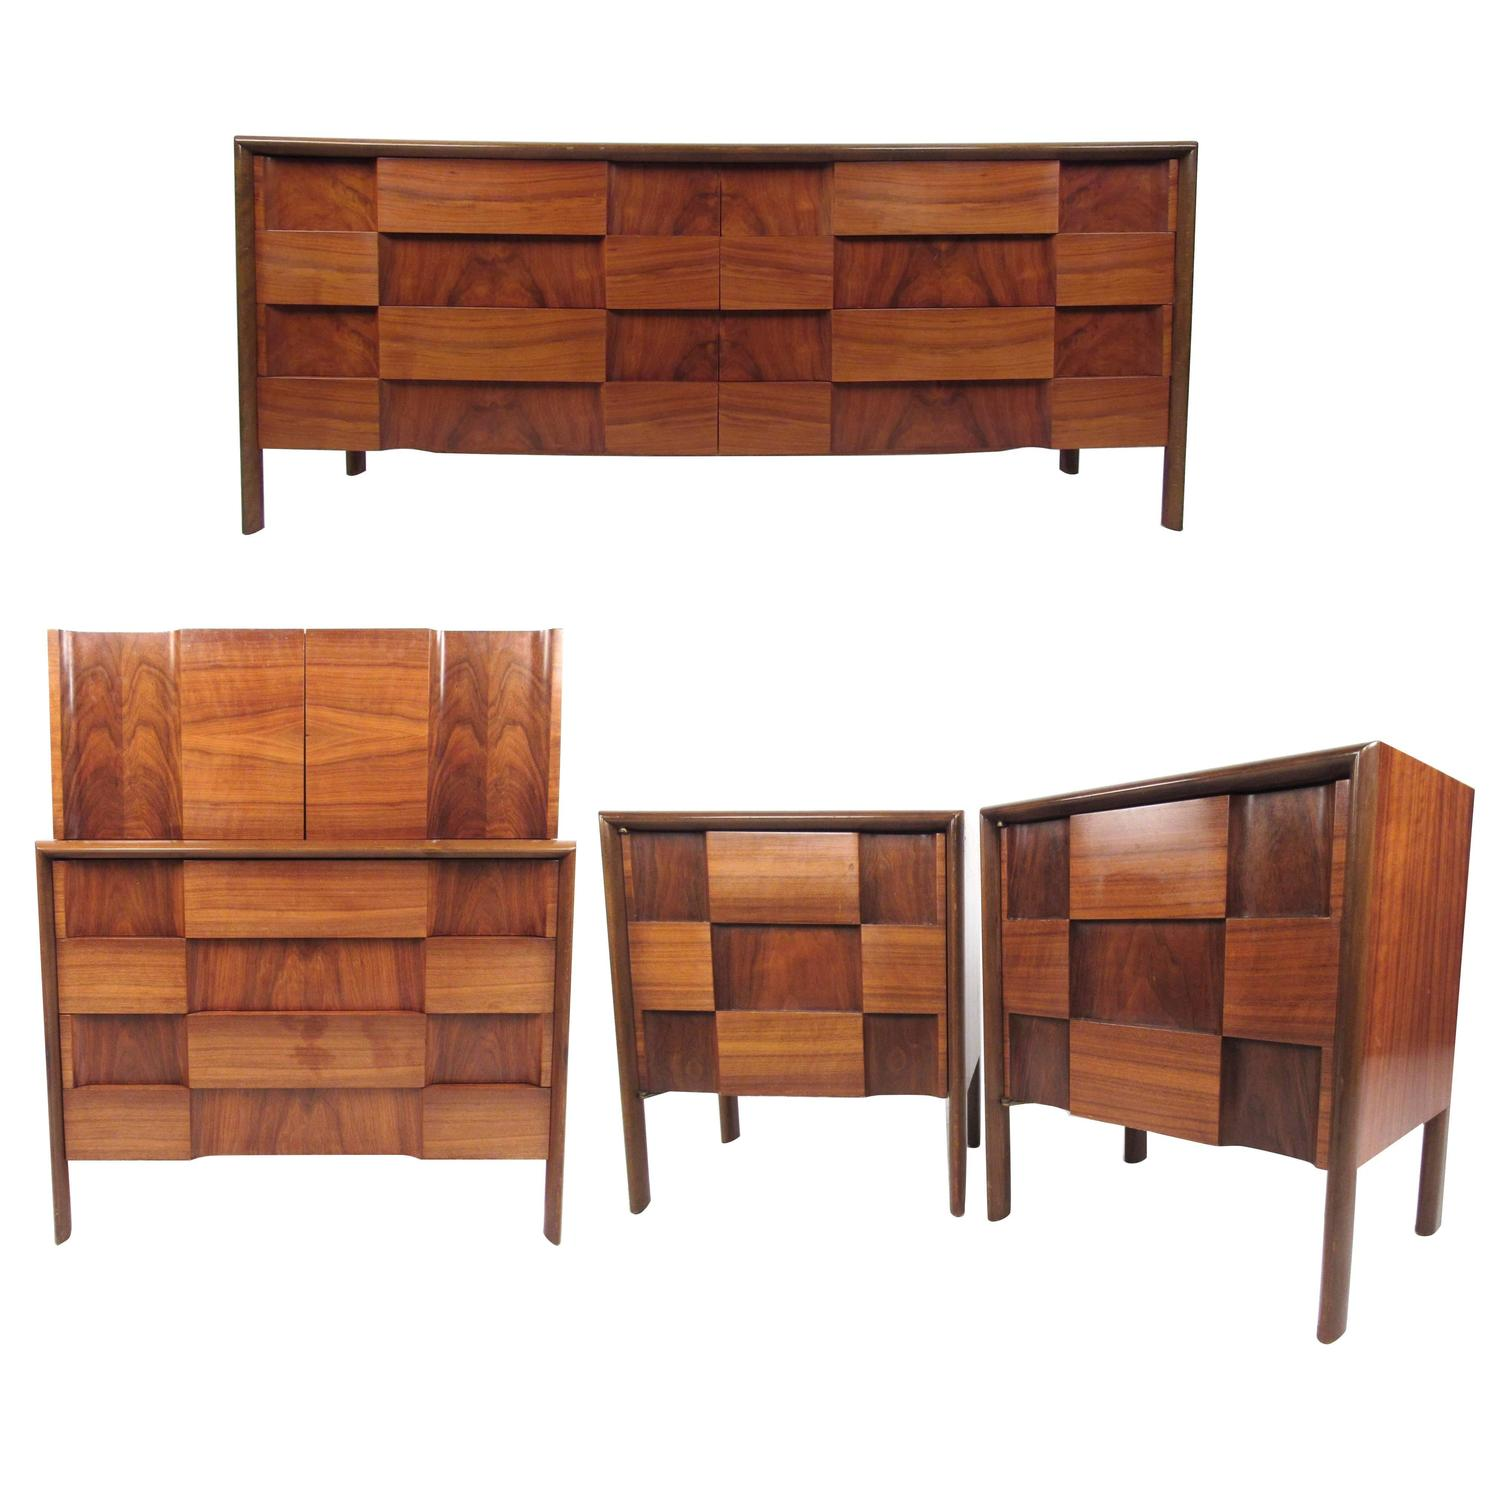 Mid Century Modern  quot Checkerboard quot  Bedroom Set. Mid Century Modern Bedroom Sets   104 For Sale at 1stdibs